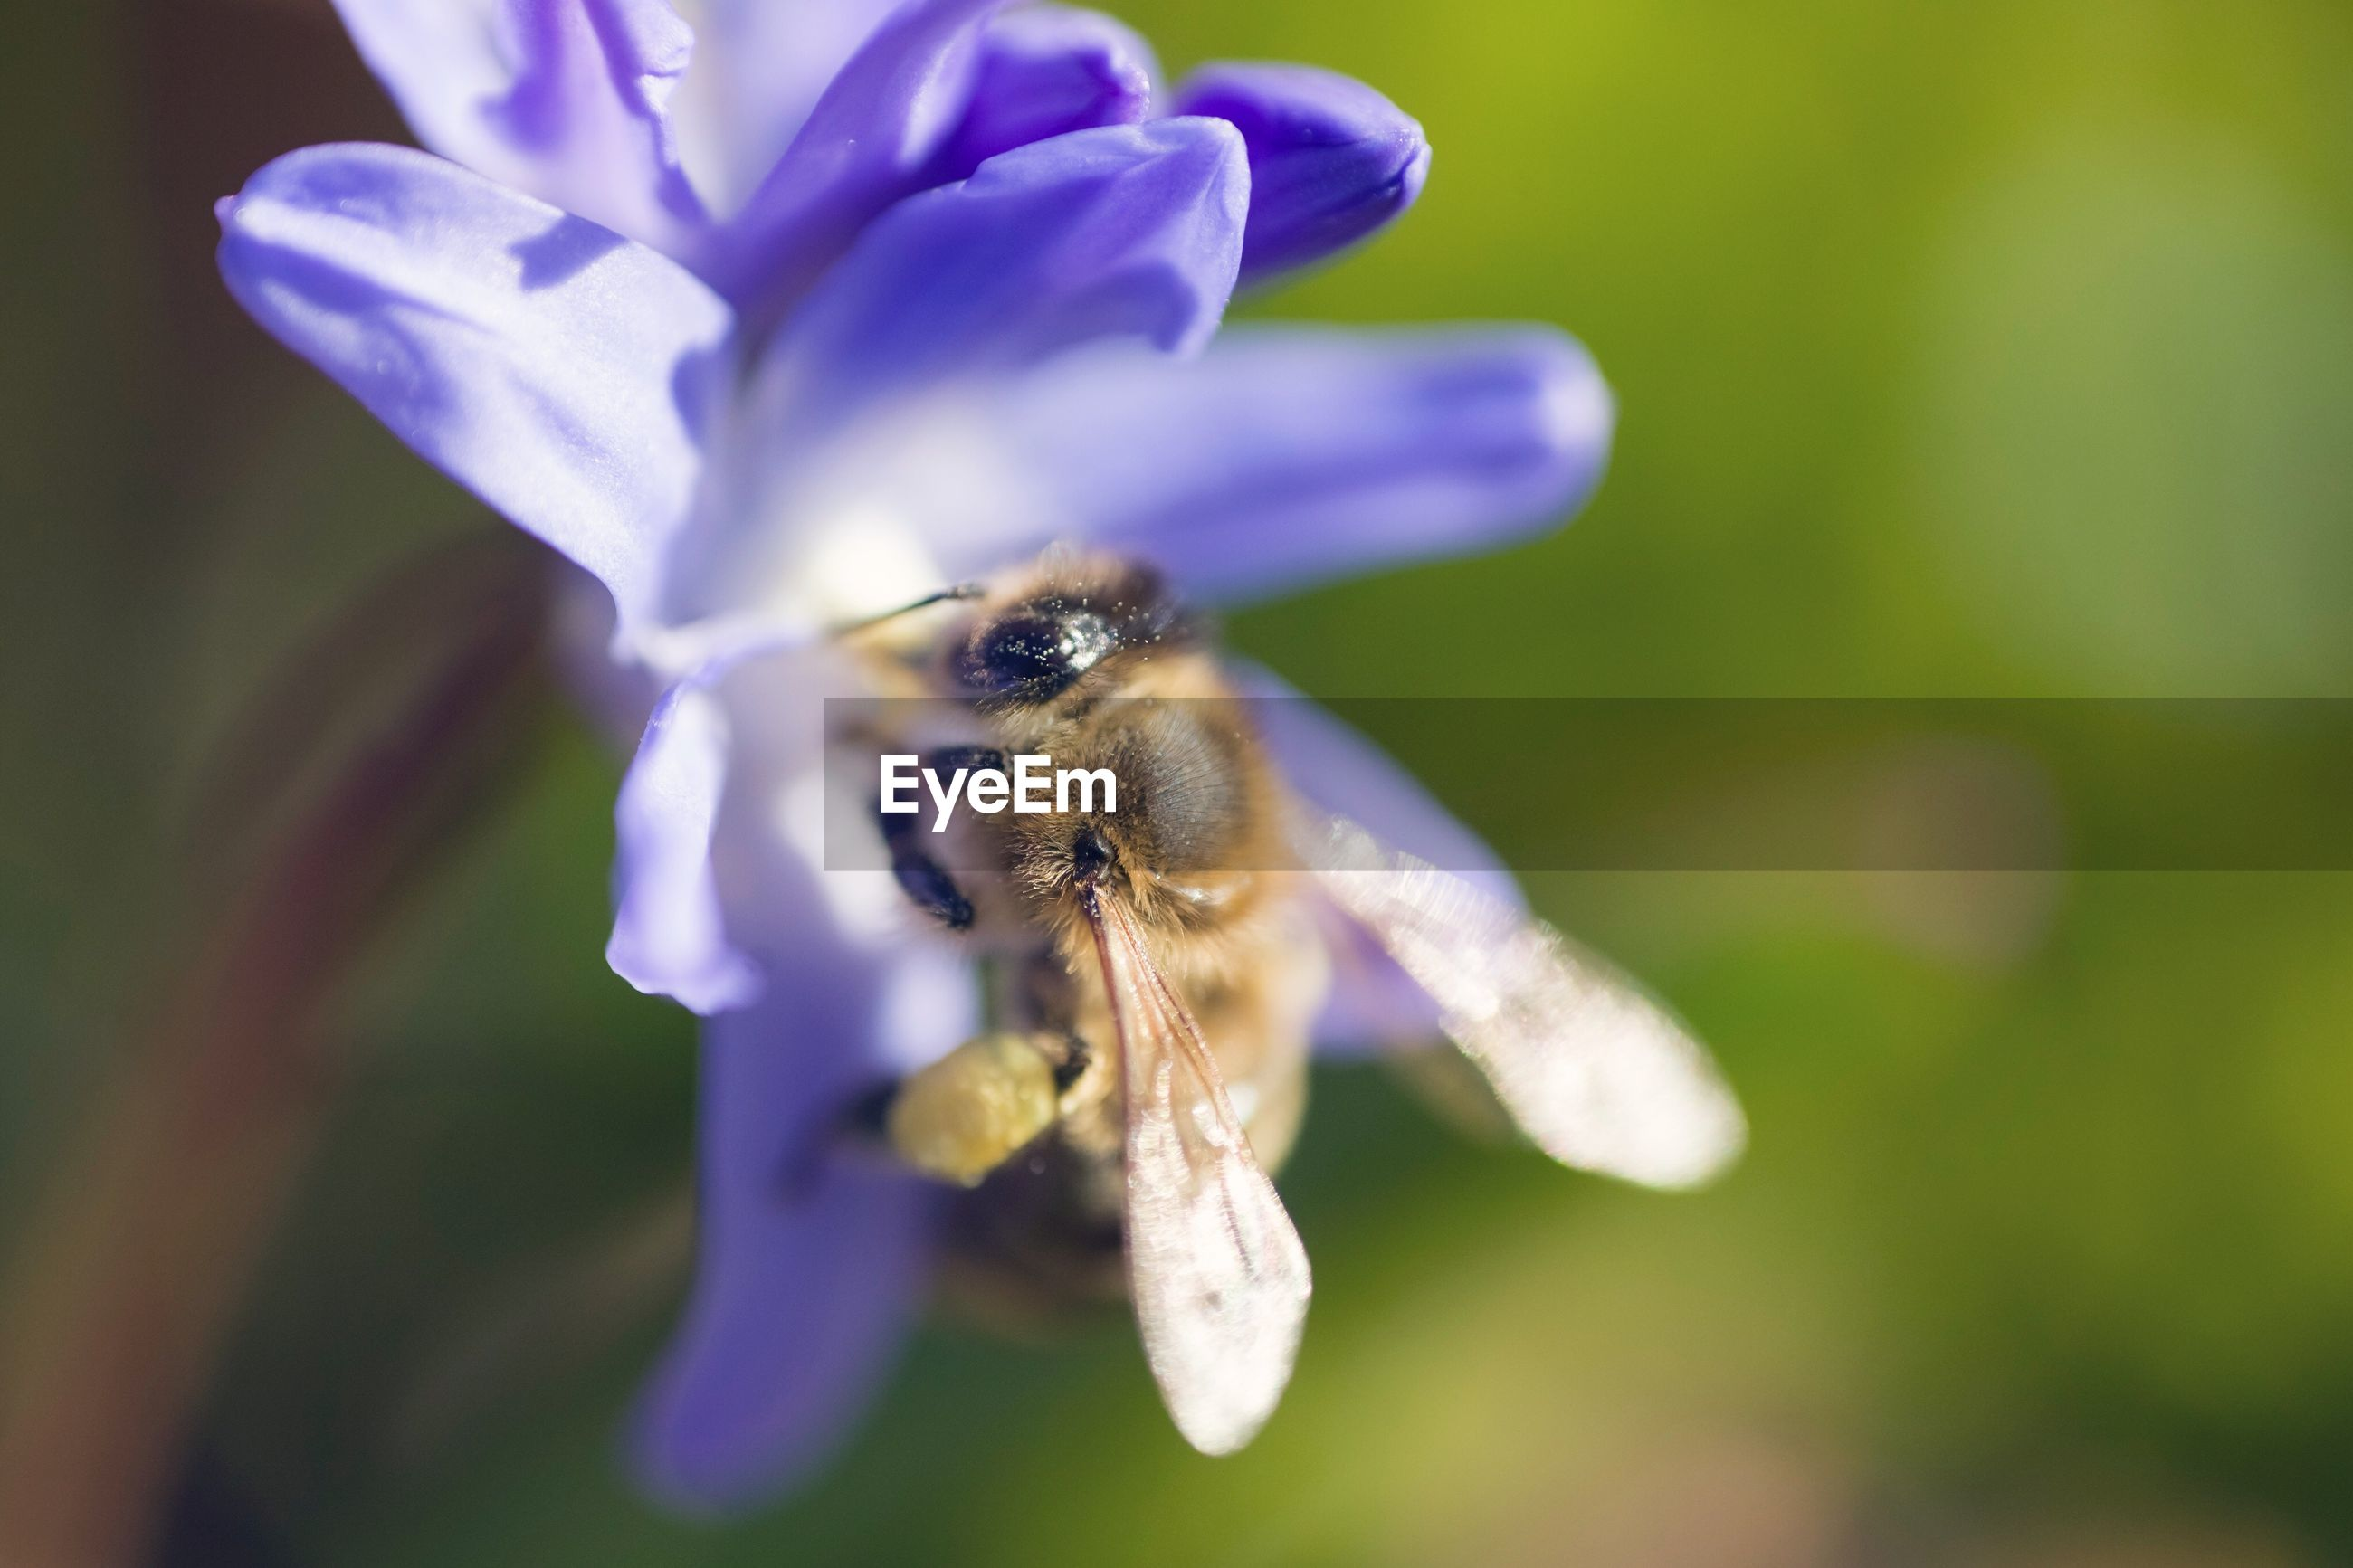 flower, one animal, nature, insect, fragility, petal, animal themes, purple, beauty in nature, animals in the wild, plant, close-up, growth, focus on foreground, day, outdoors, flower head, no people, bee, animal wildlife, freshness, pollination